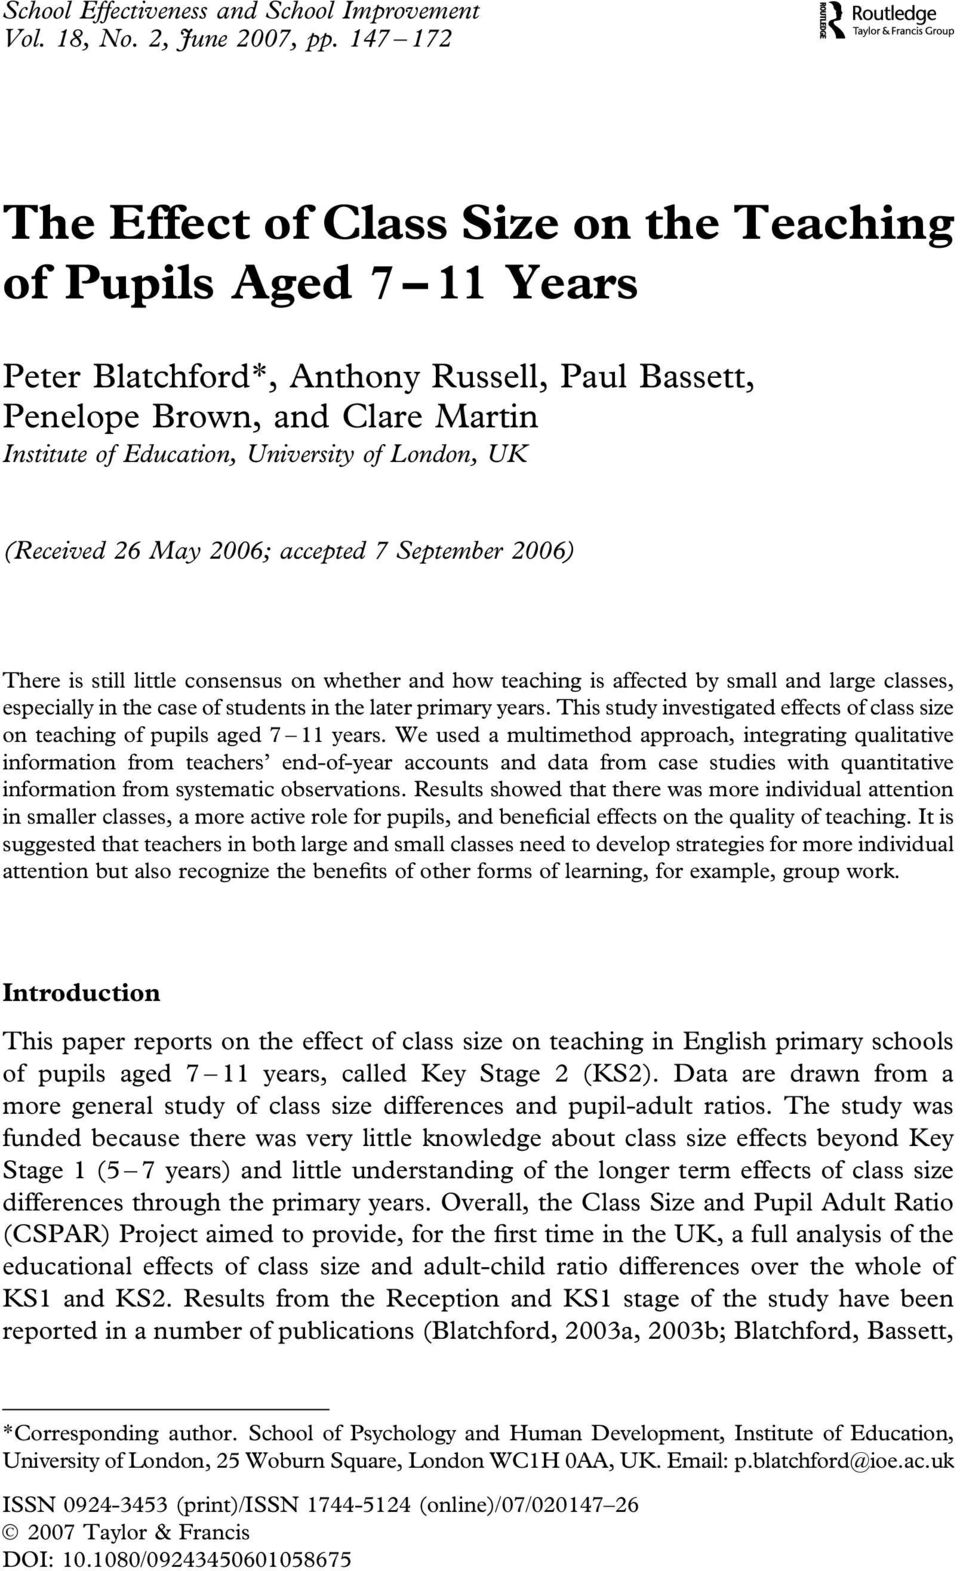 London, UK (Received 26 May 2006; accepted 7 September 2006) There is still little consensus on whether and how teaching is affected by small and large classes, especially in the case of students in